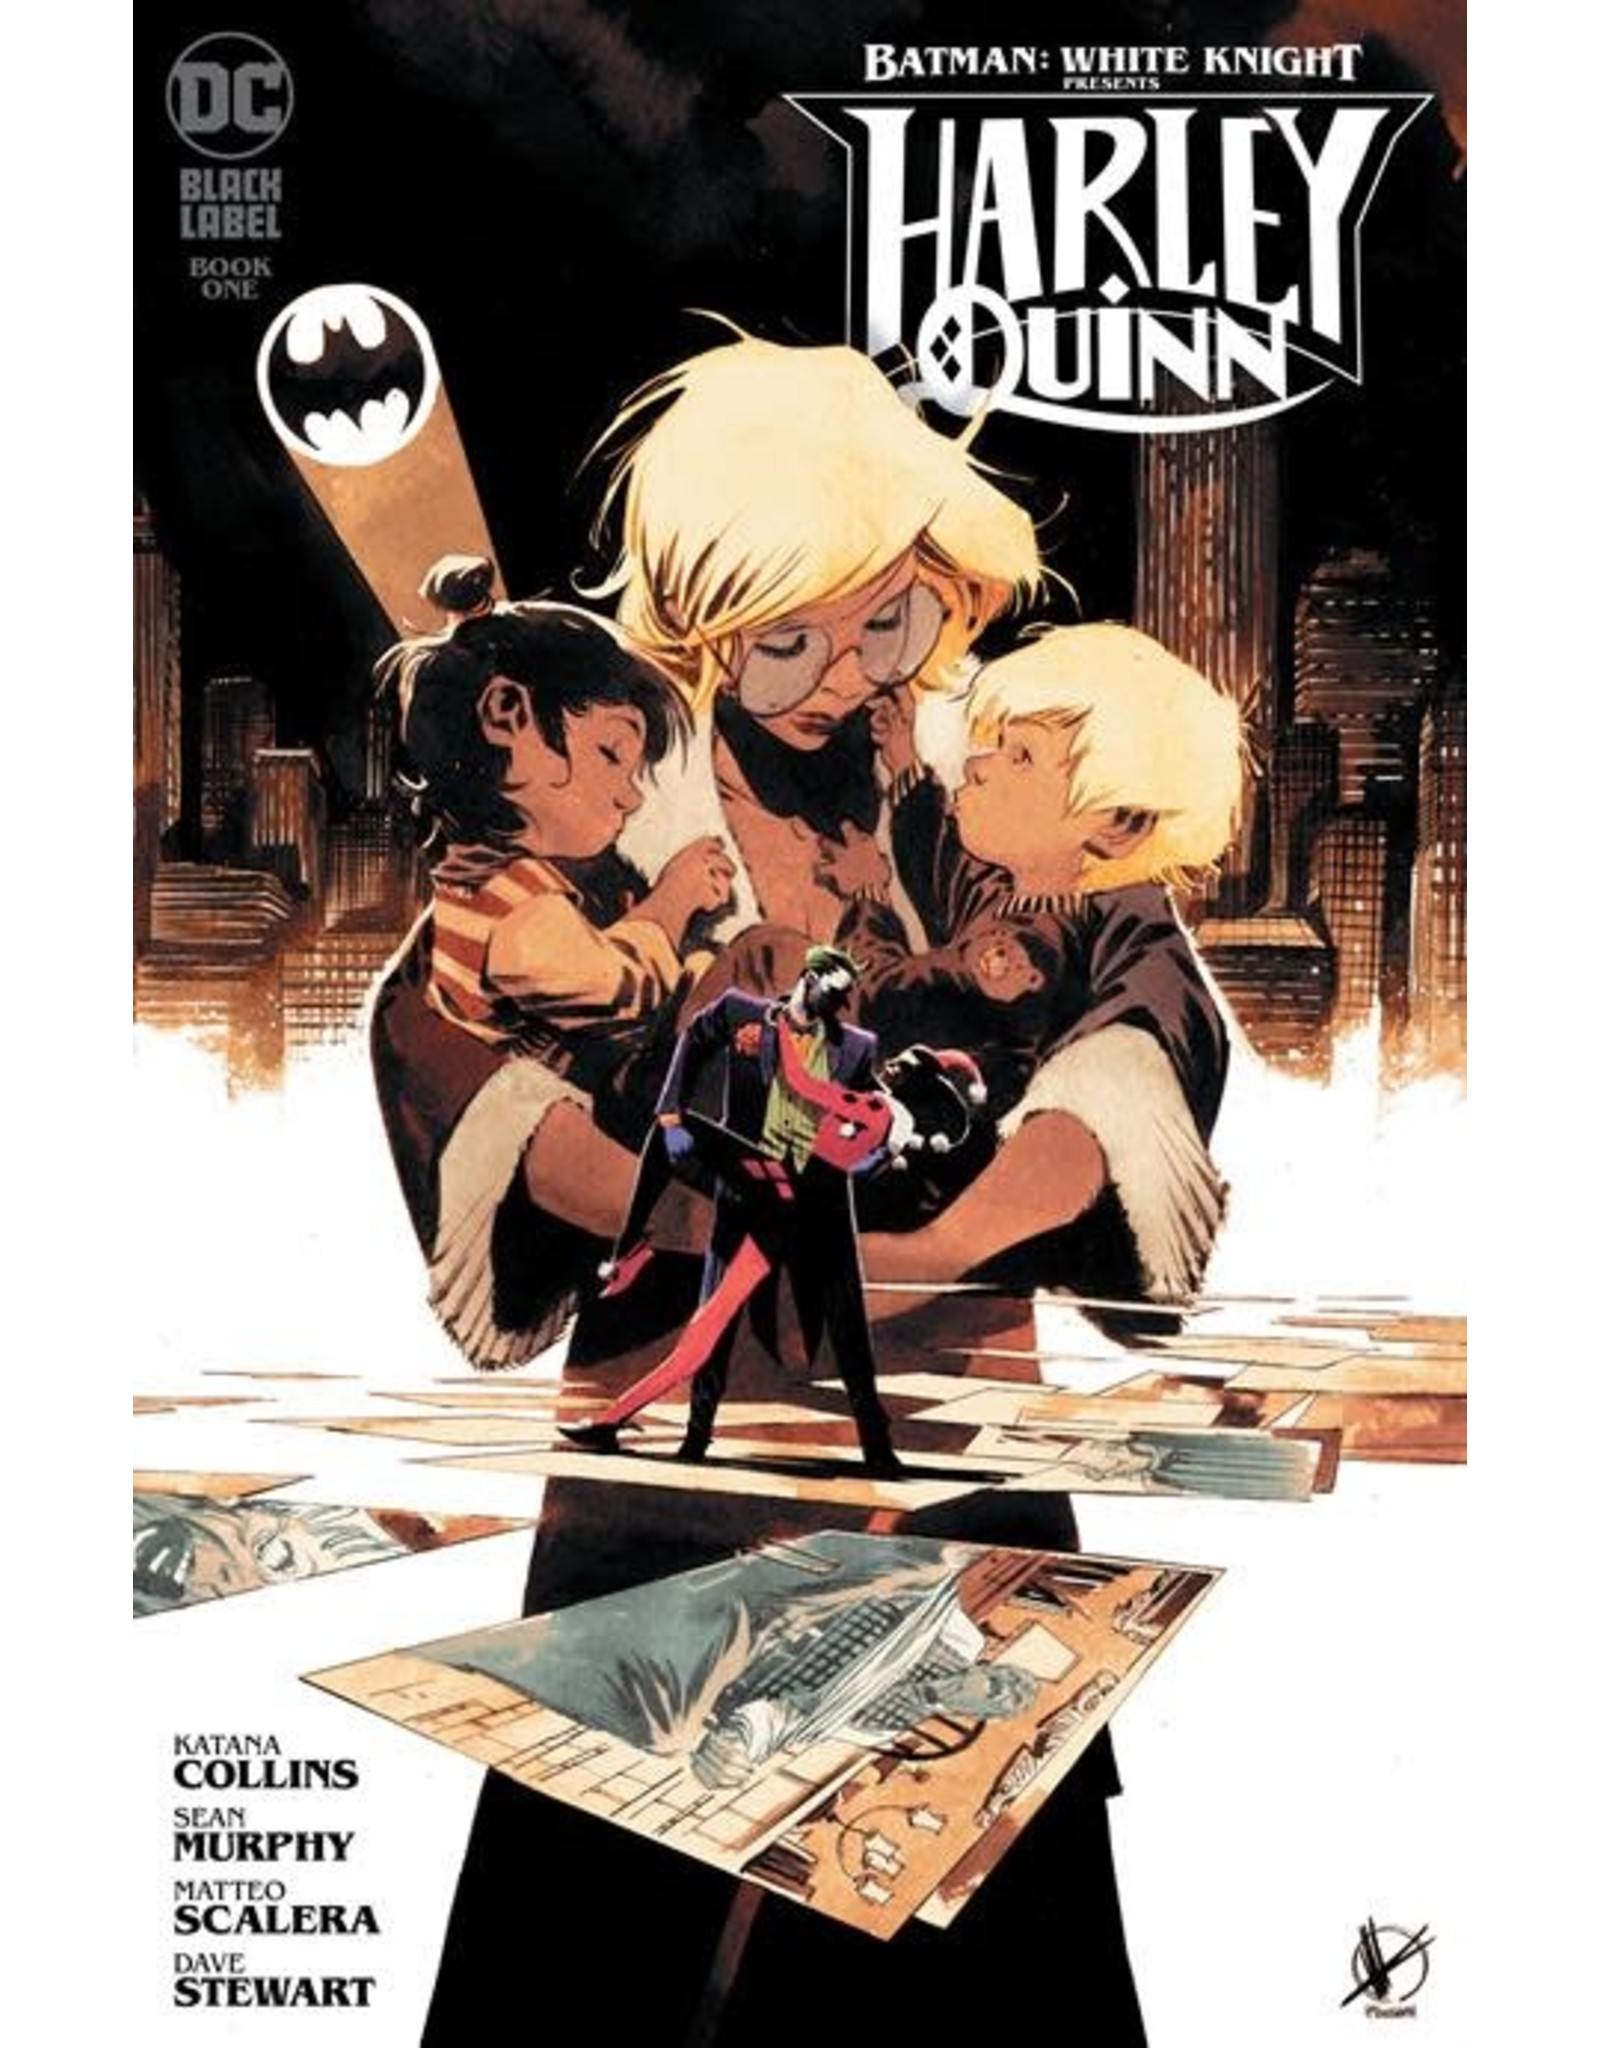 DC Comics BATMAN WHITE KNIGHT PRESENTS HARLEY QUINN #1 (OF 6) CVR B MATTEO SCALERA VAR